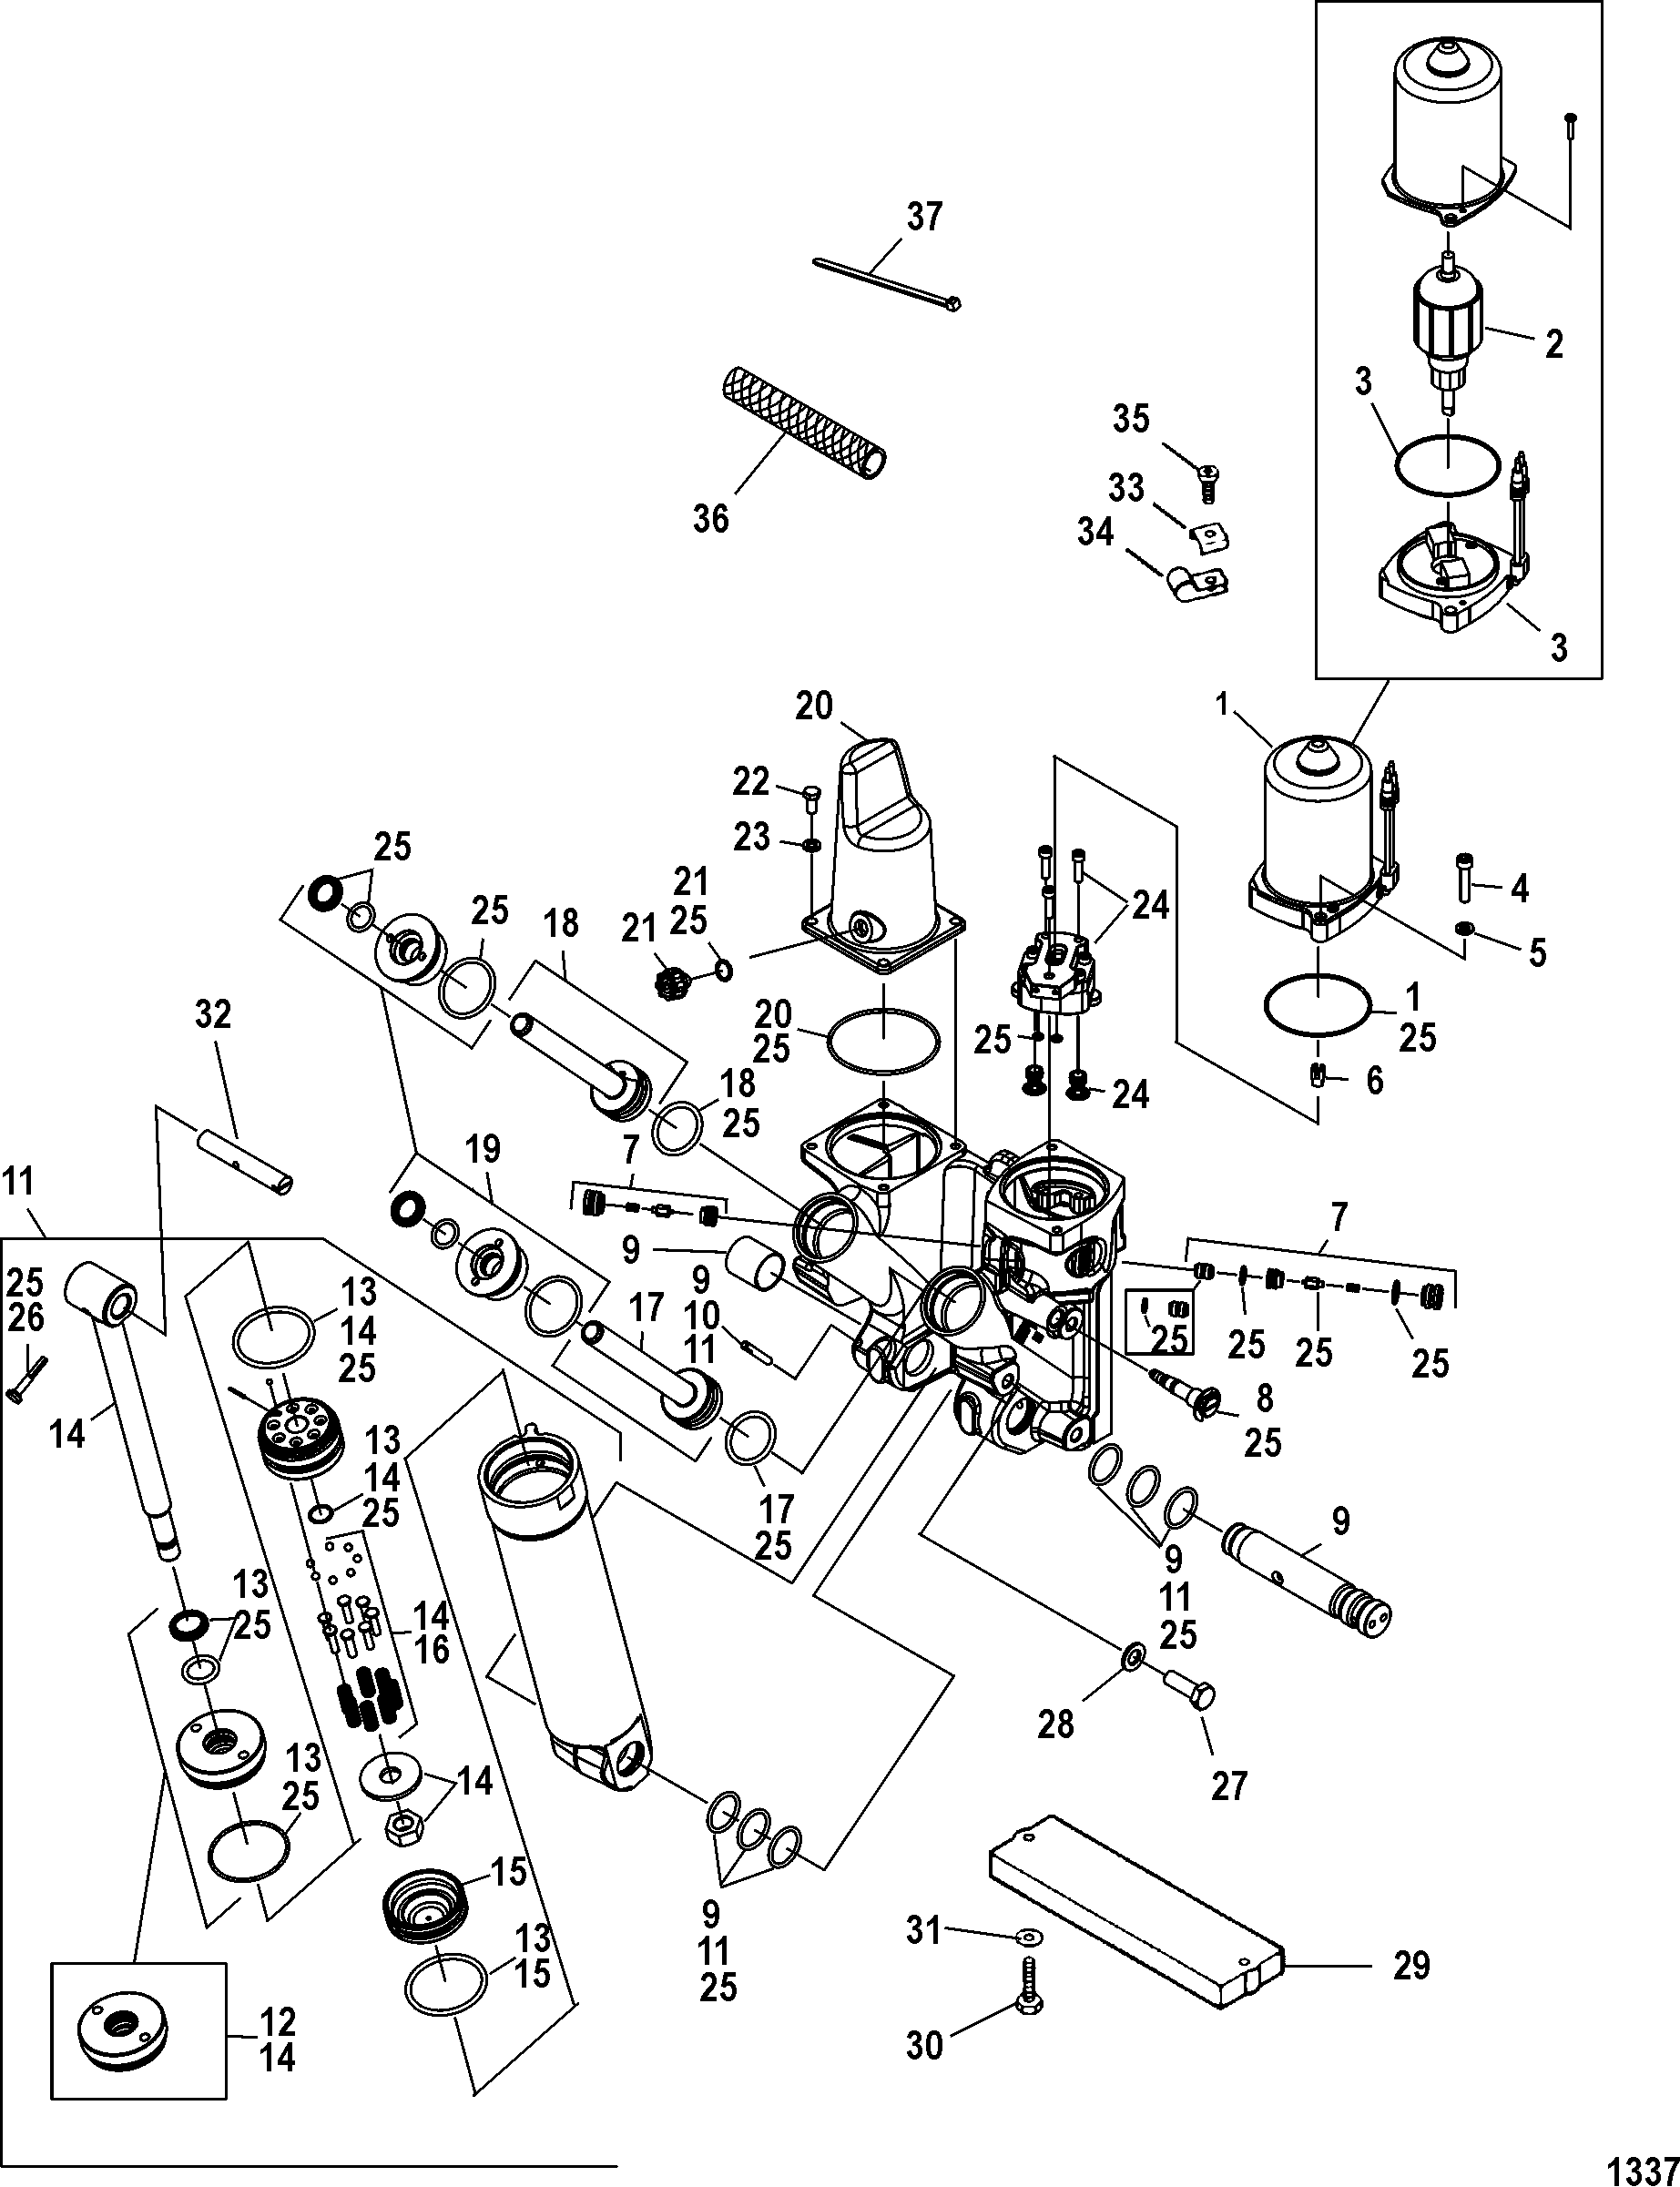 mercury optimax wiring diagram power trim components for mercury 200 optimax v6 dfi 1970 mercury outboard wiring diagram